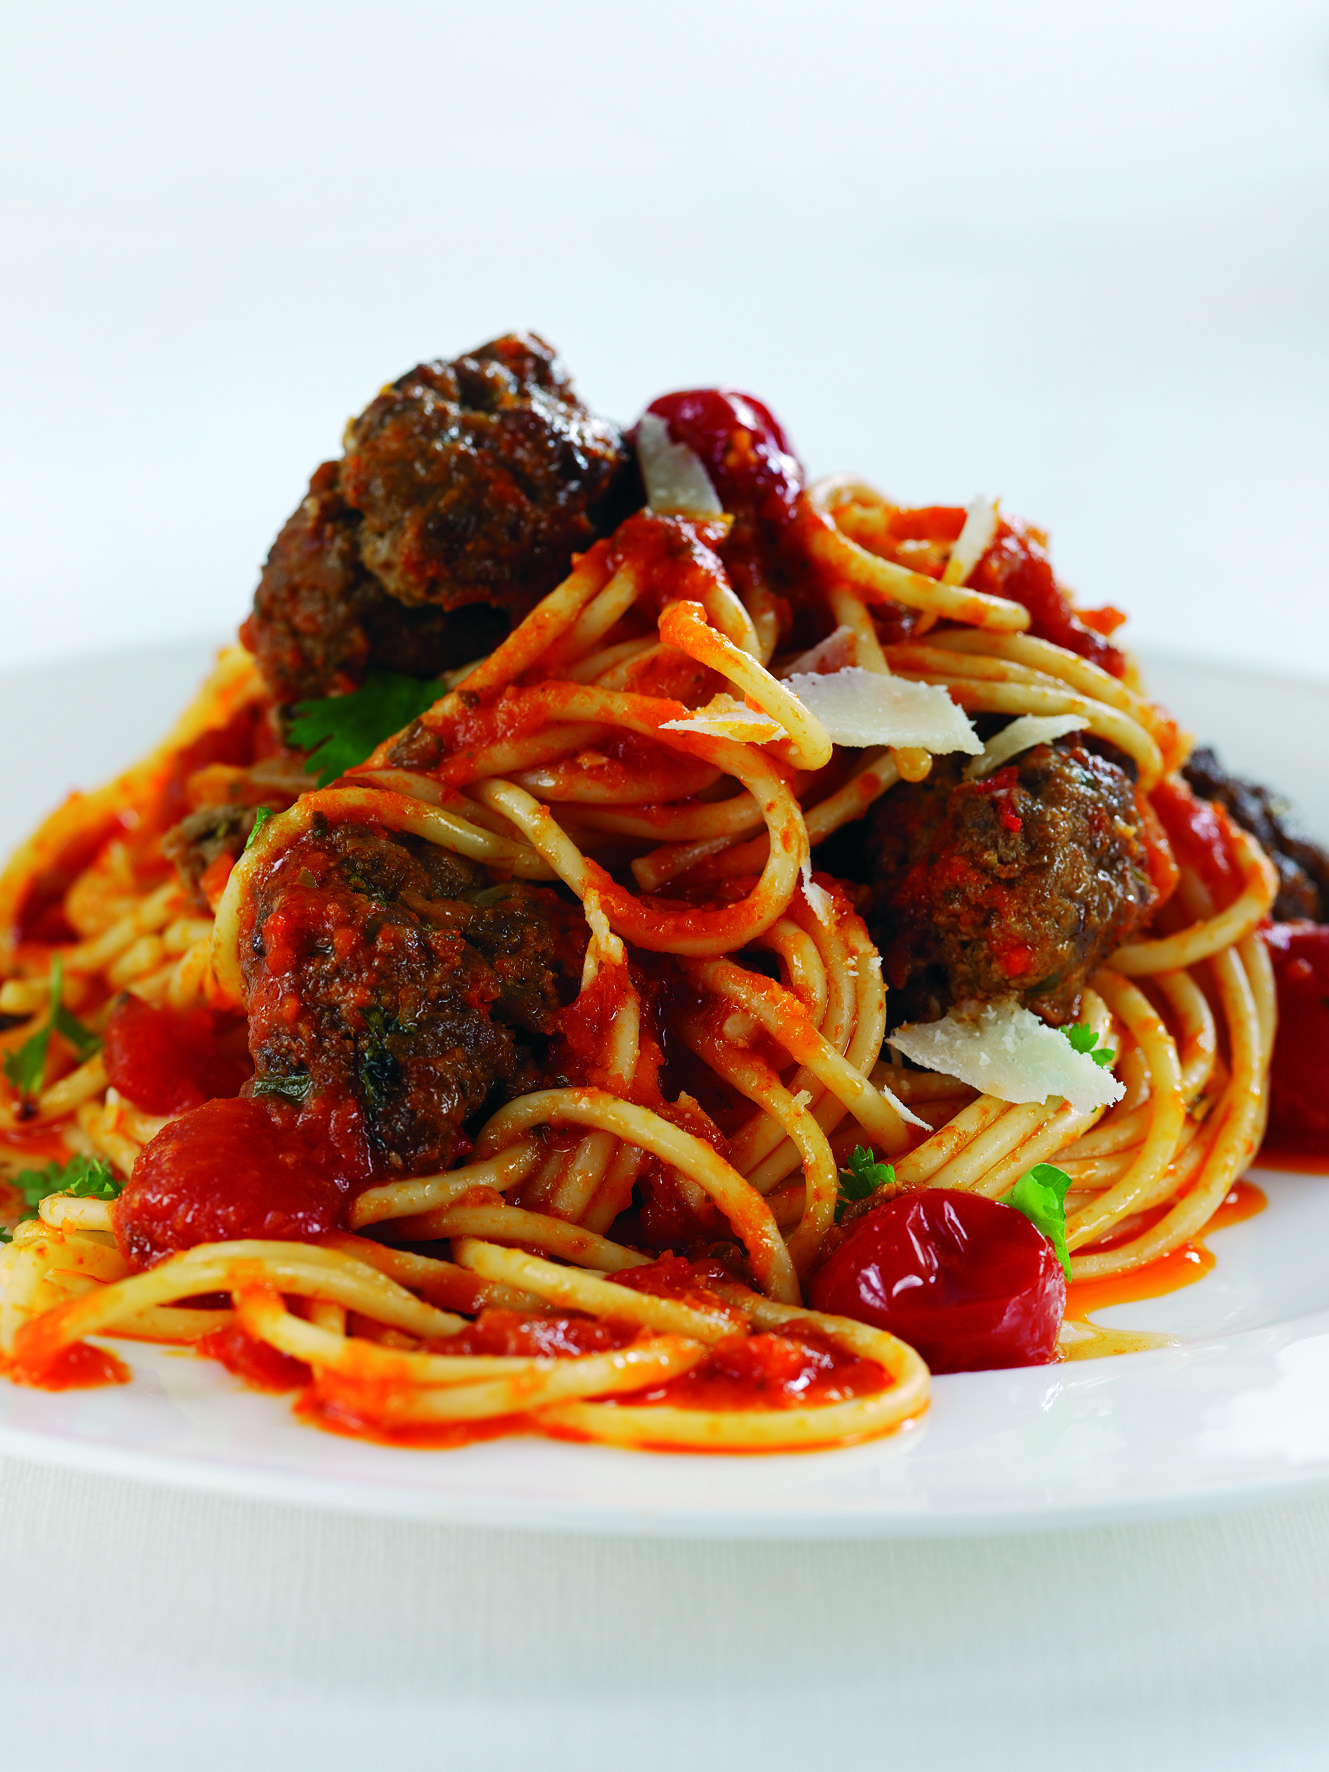 Recipe: Meatballs with Sun-dried Tomato Pesto Sauce